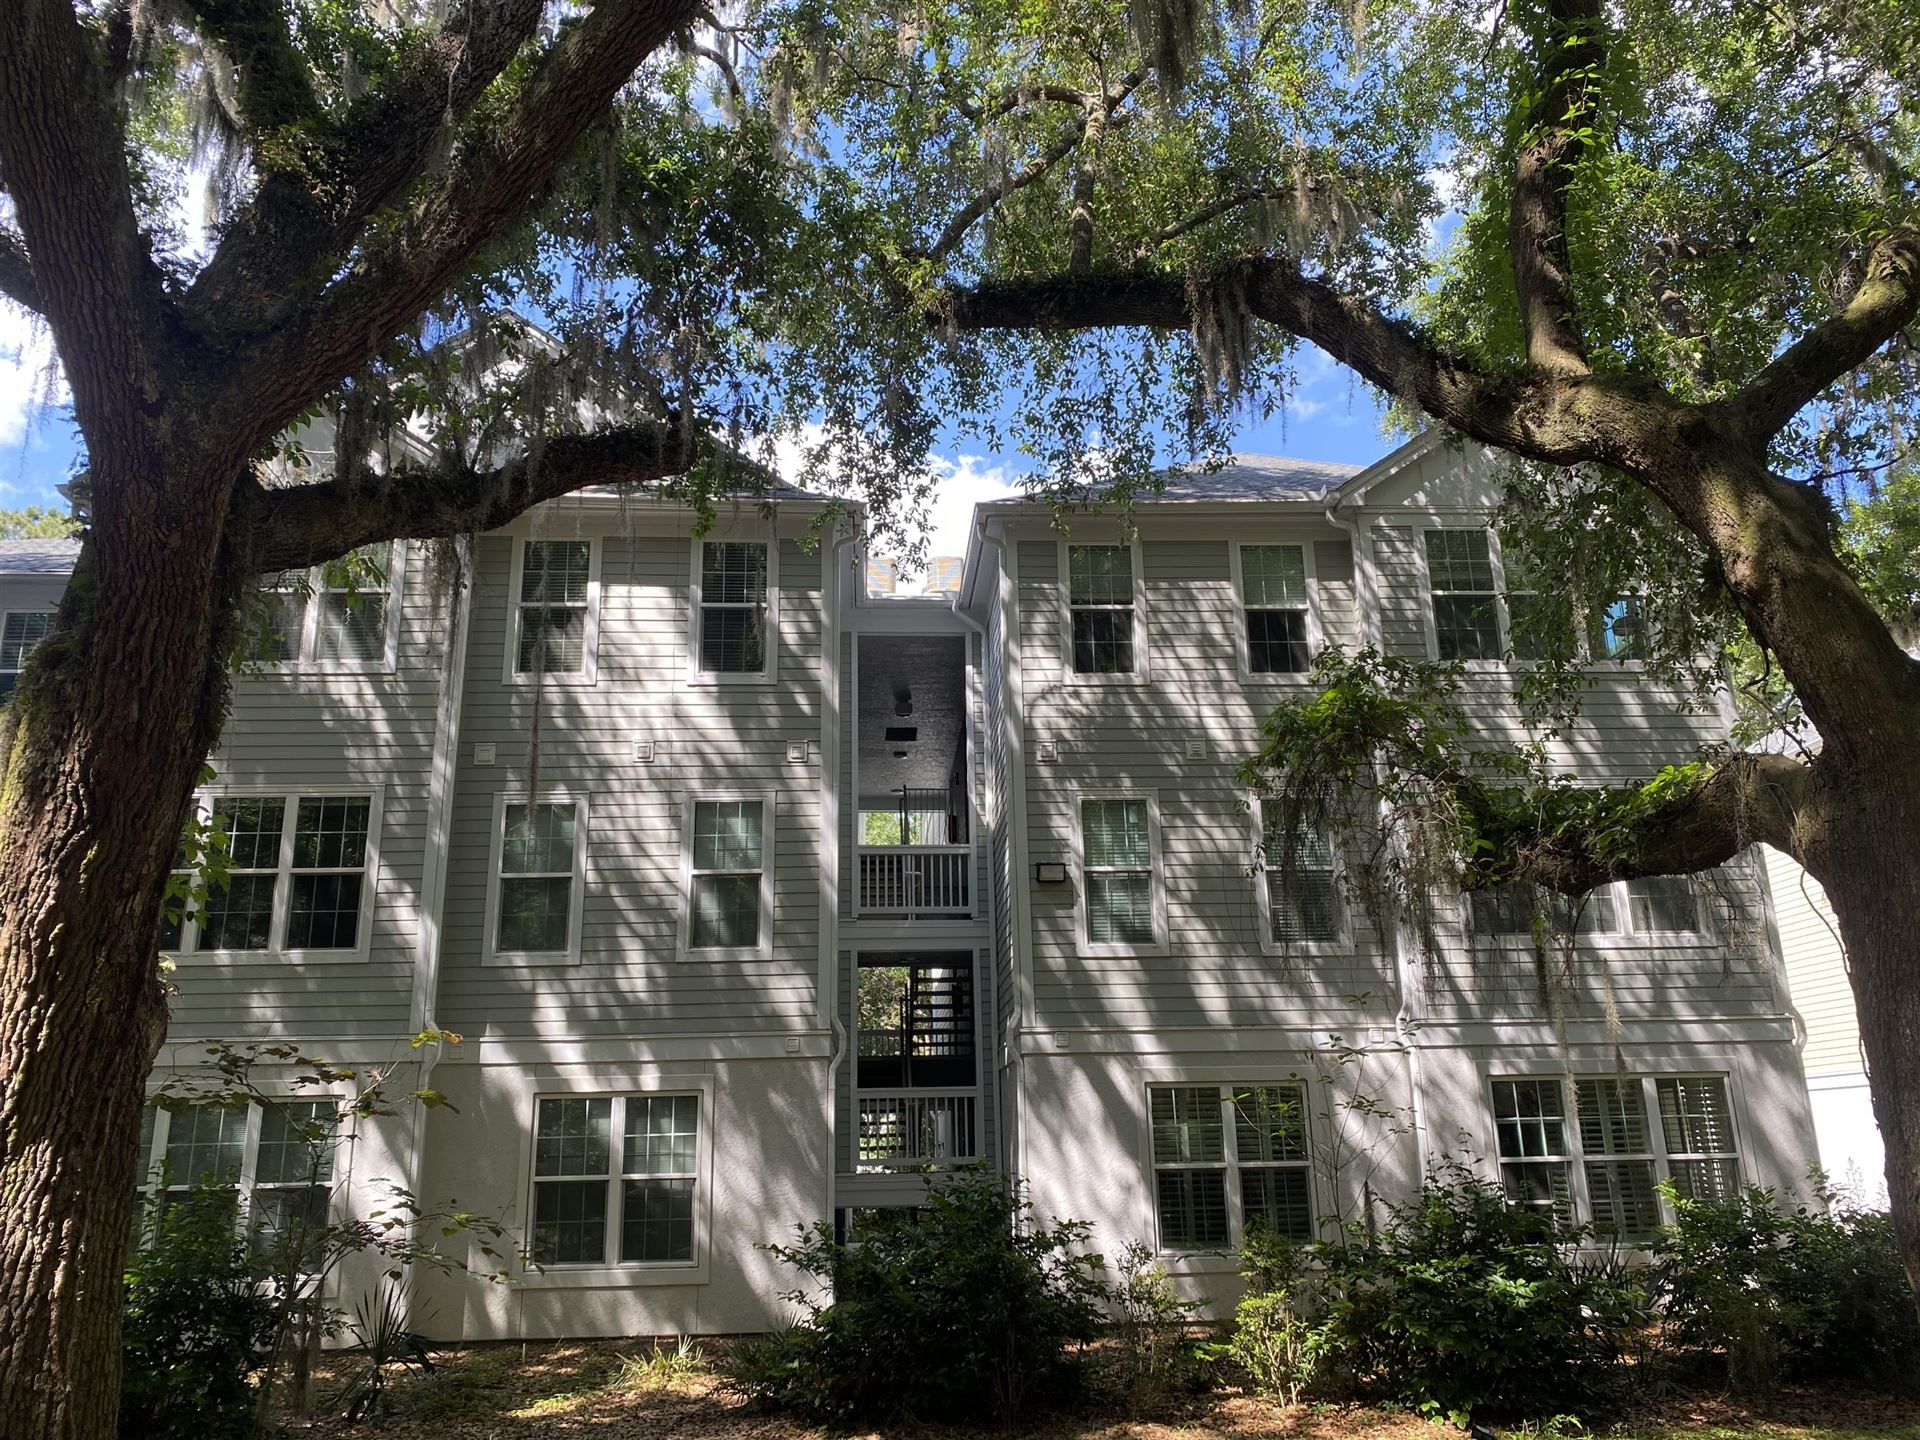 Photo of 60 Fenwick Hall Alley #336, Johns Island, SC 29455 (MLS # 21012323)